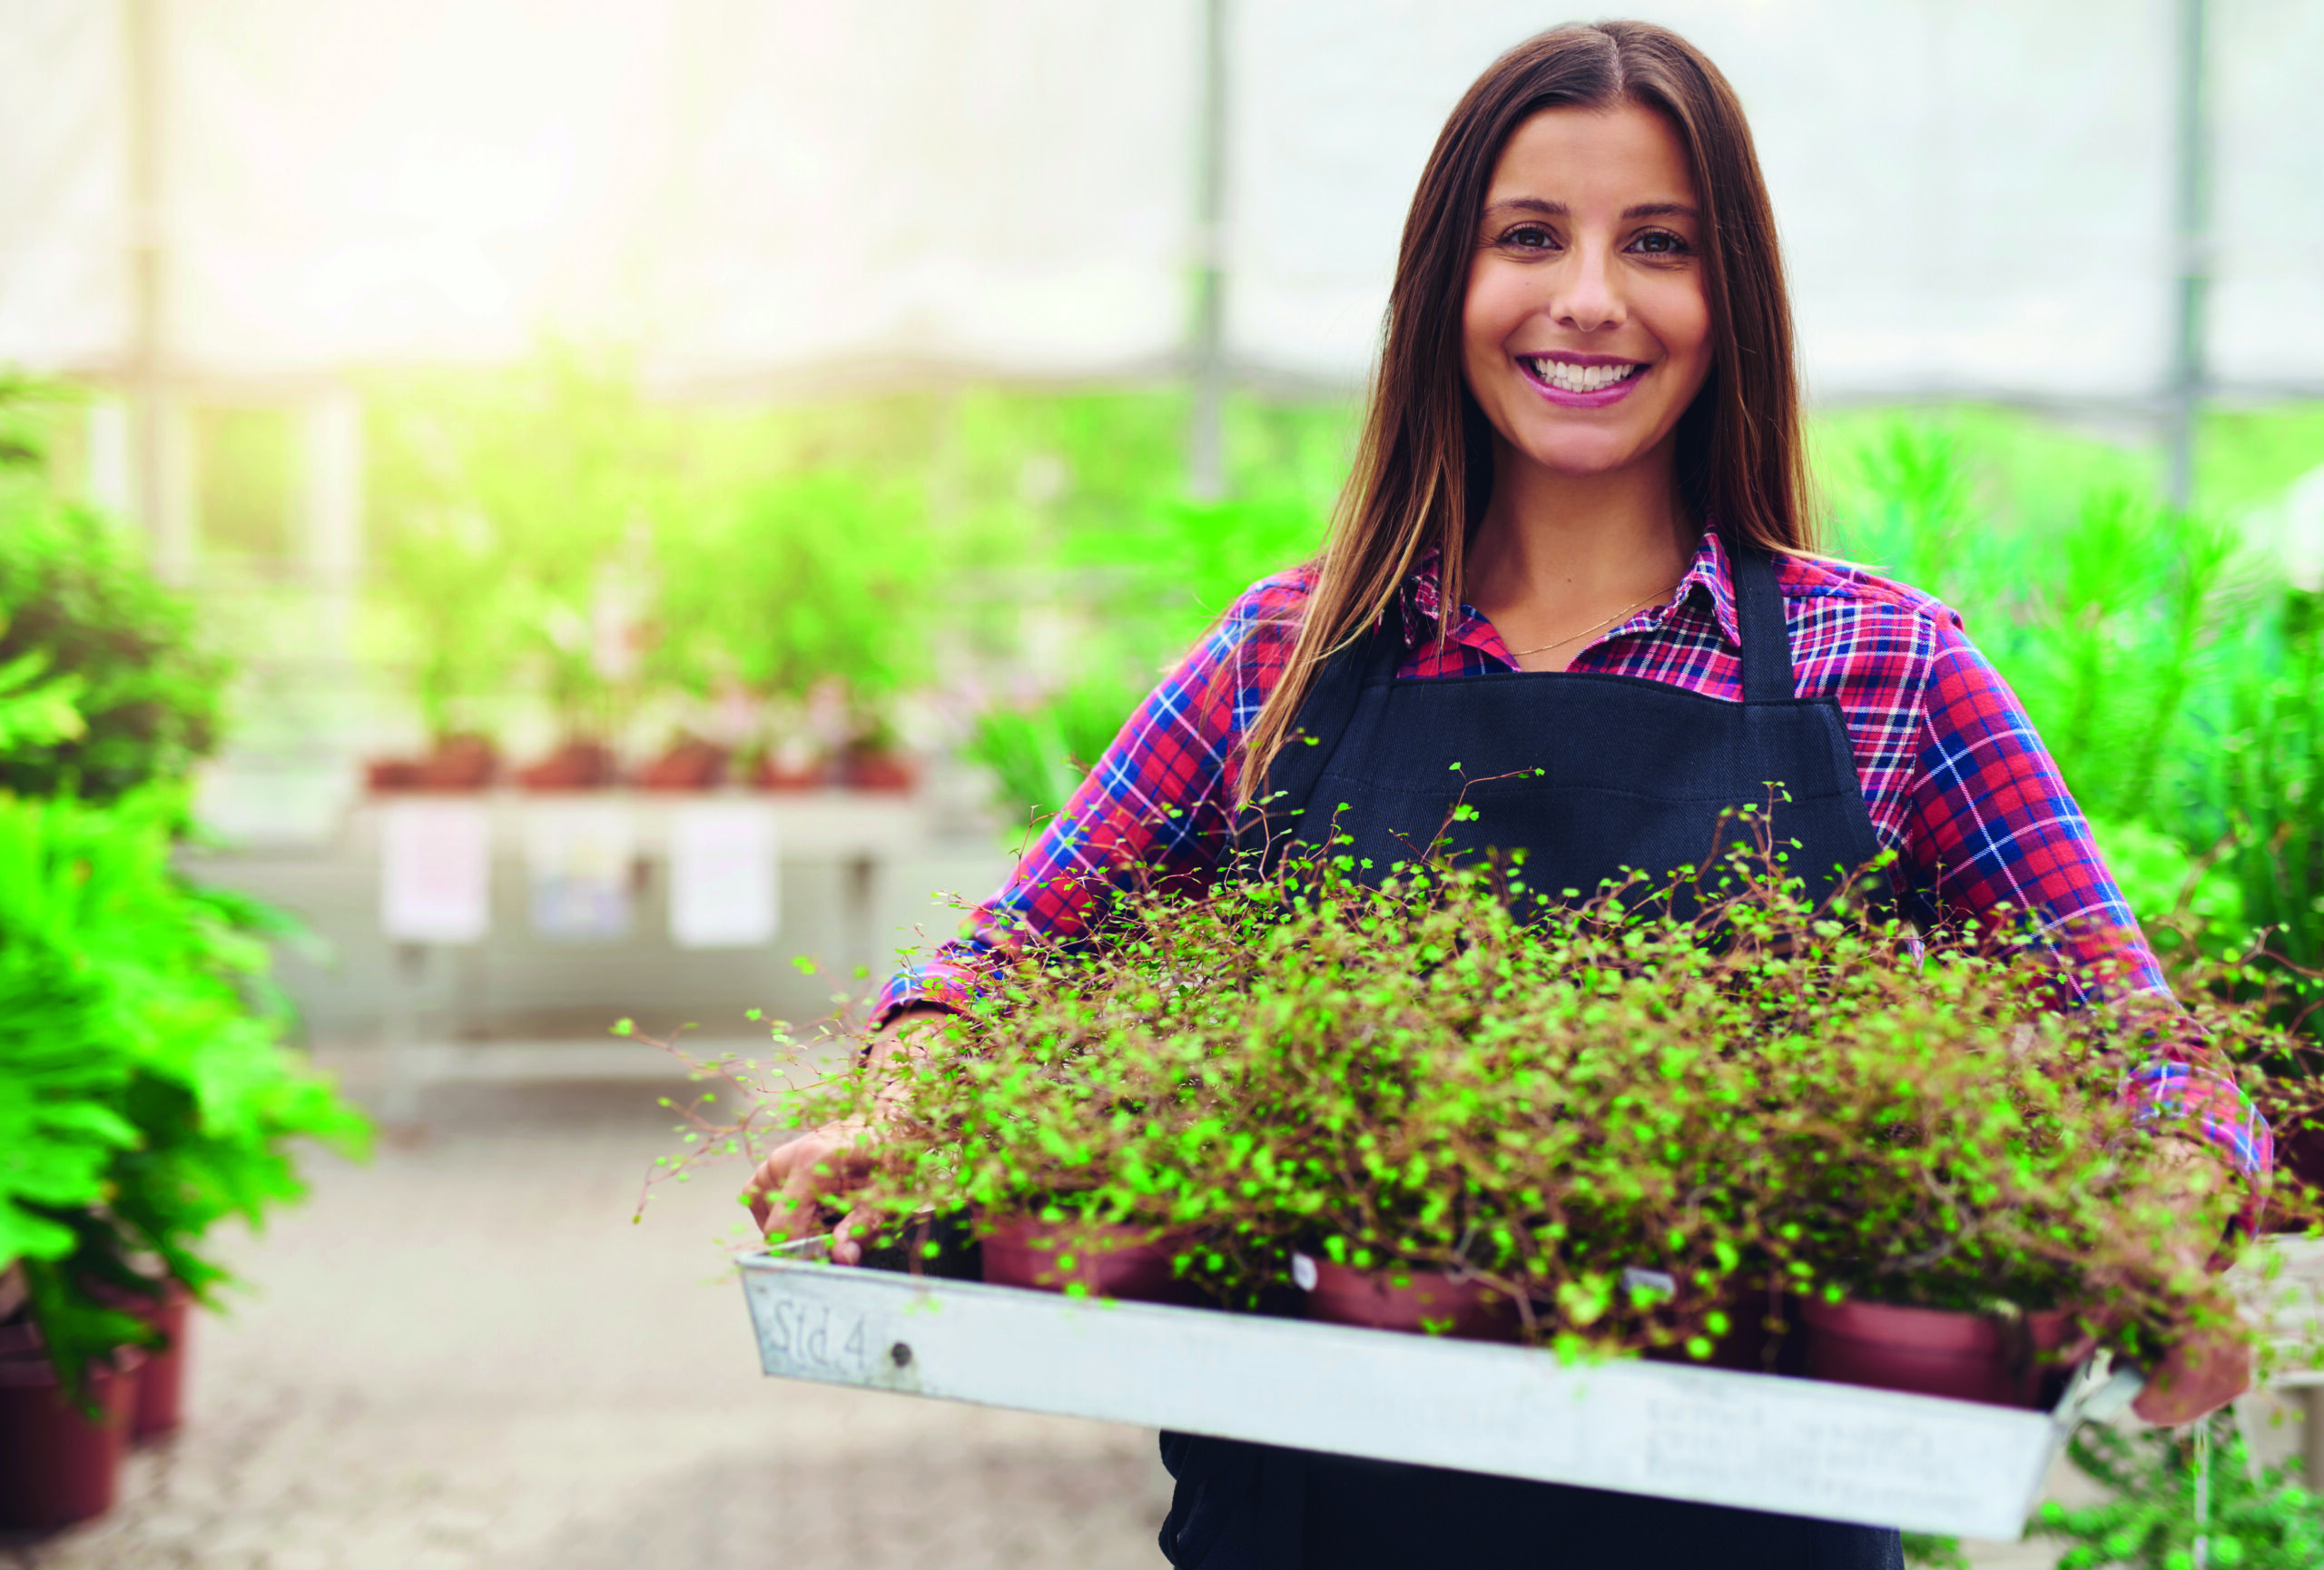 Smiling woman working in a commercial nursery selling plants to the public standing holding a tray of potted houseplants in her hands as she smiles at the camera